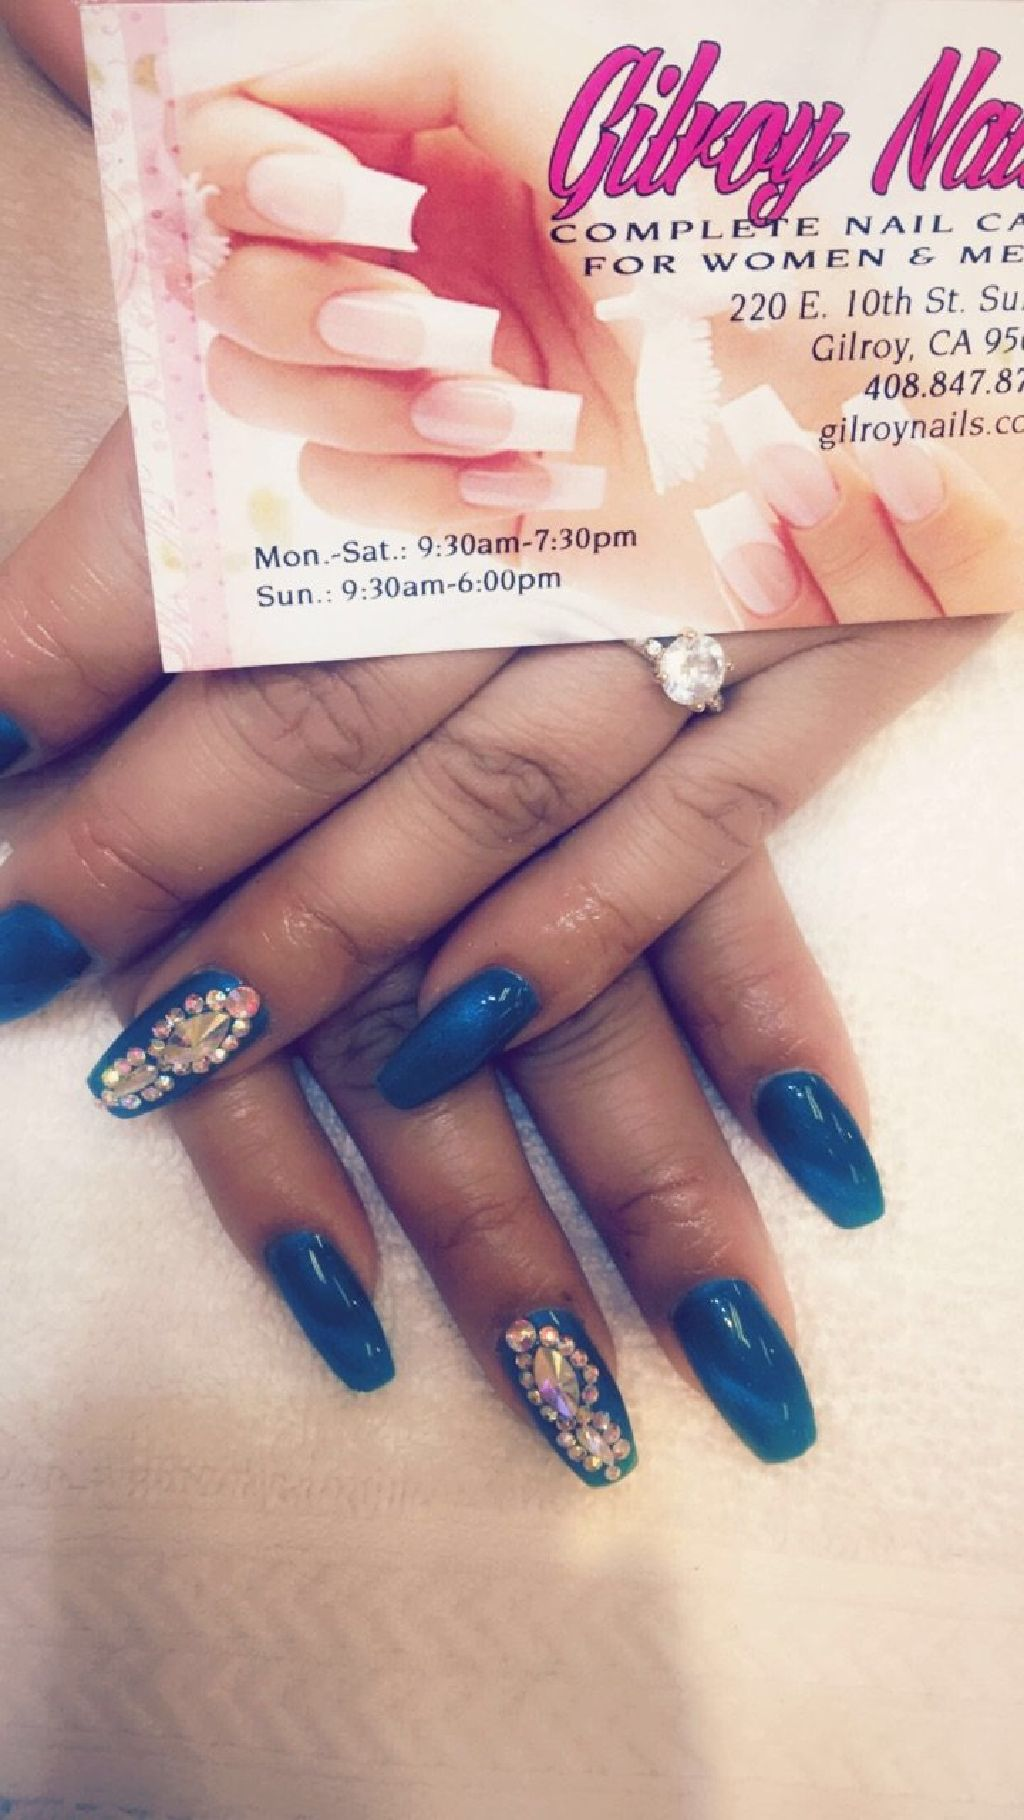 Are You Looking For The Best Nail Salon Near Me In Gilroy